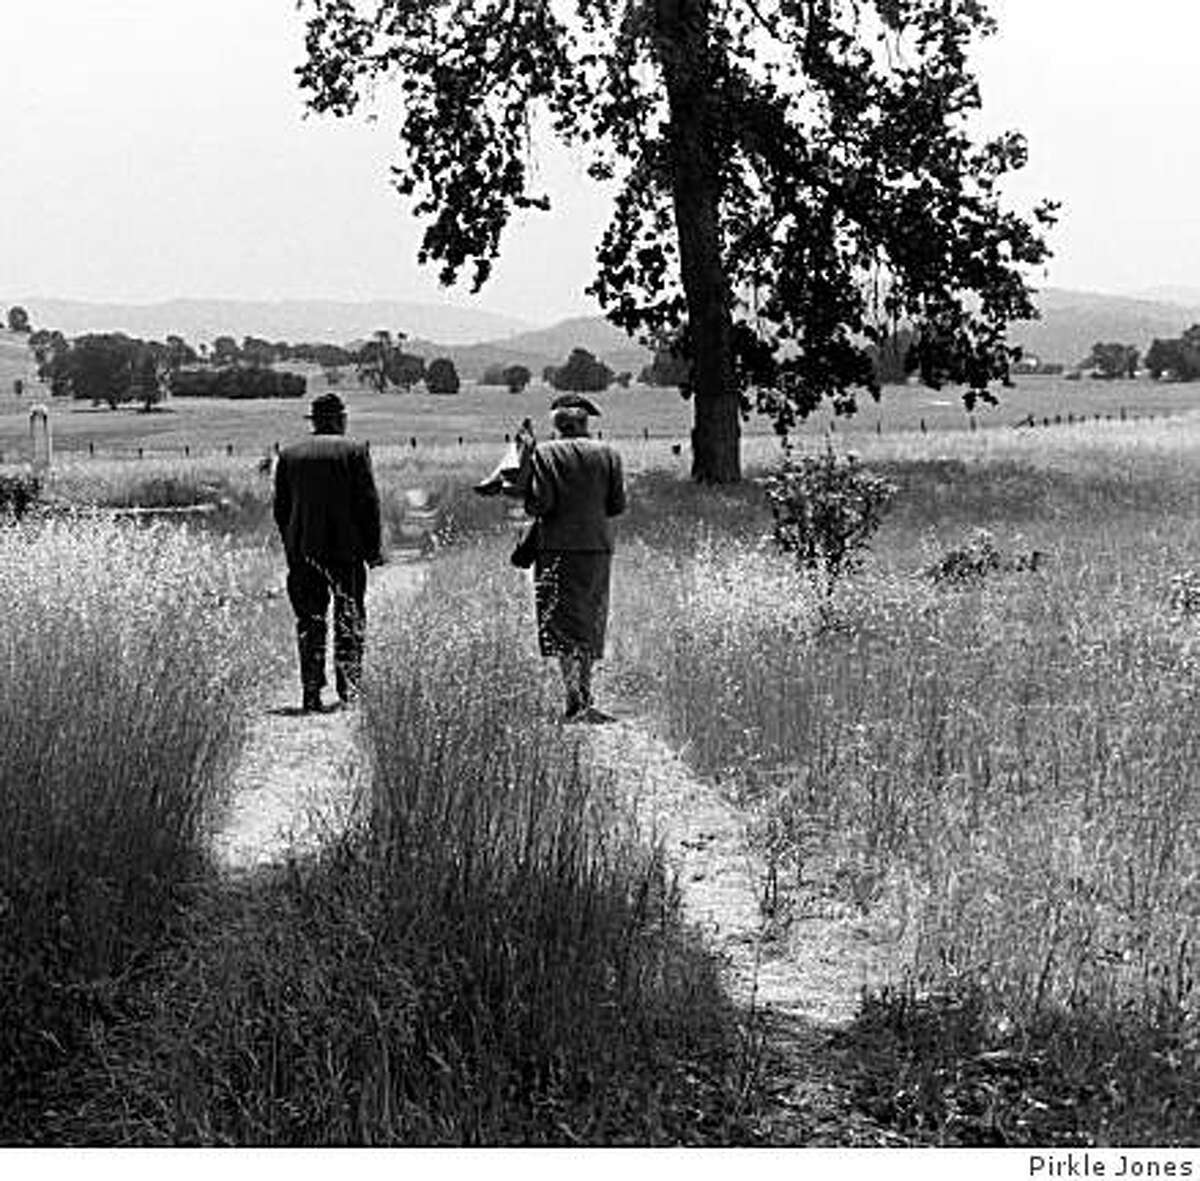 """""""Last Memorial Day,"""" a photo by Pirkle Jones from the 2008 Napa Valley Museum exhibition """"Berryessa Valley: The Last Year,"""" was shot in 1956 in the town of Monticello just before Lake Berryessa was created."""